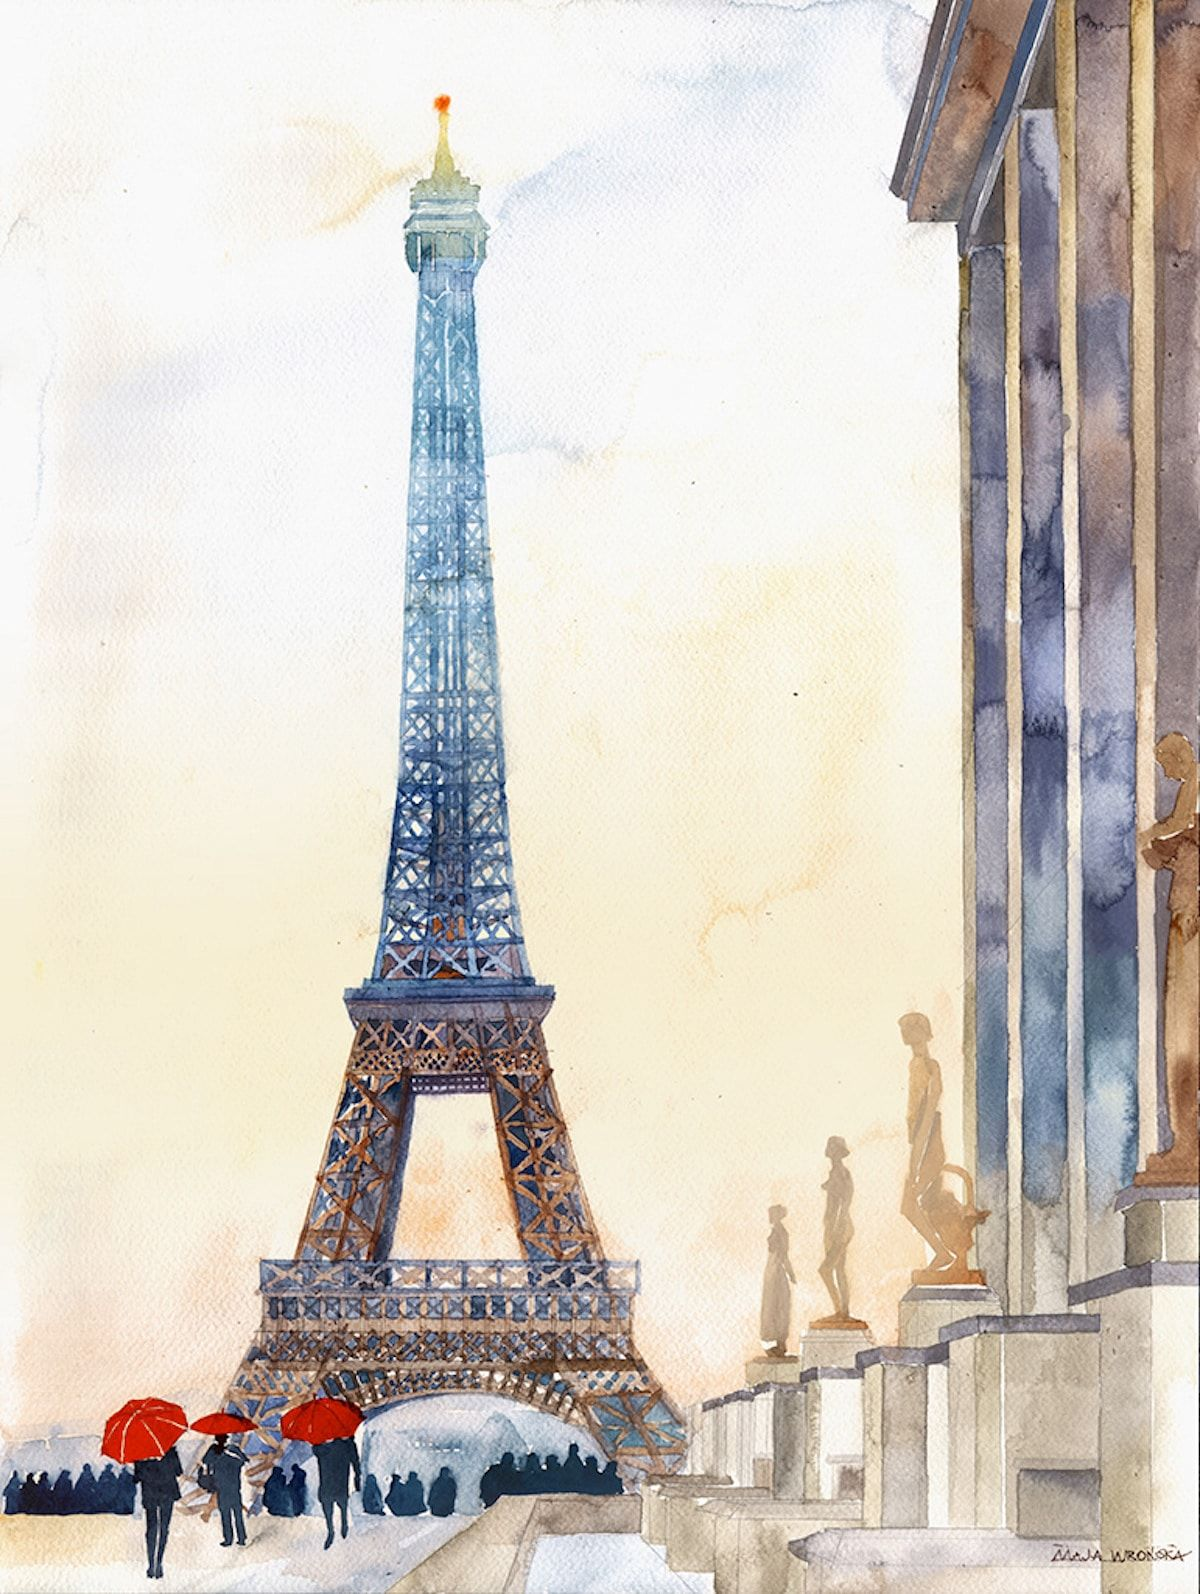 Watercolor Paintings Capture The Beloved Monuments Of Cities